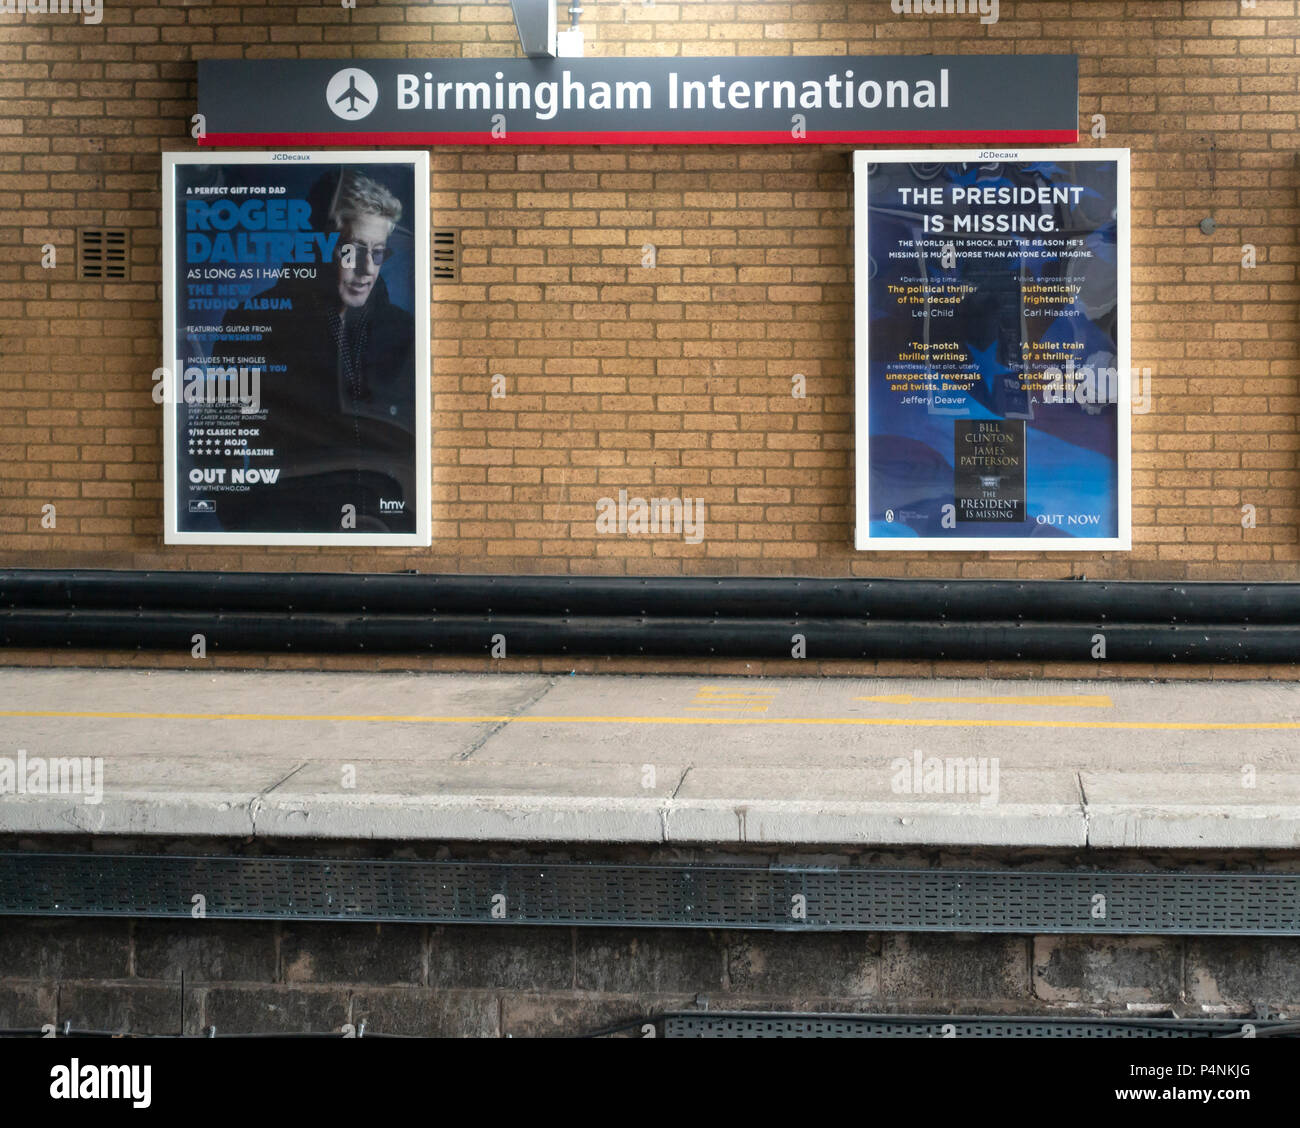 Platform at Birmingham International Airport station, with posters for Roger Daltrey's As Long as I Have You album and The President is Missing. - Stock Image